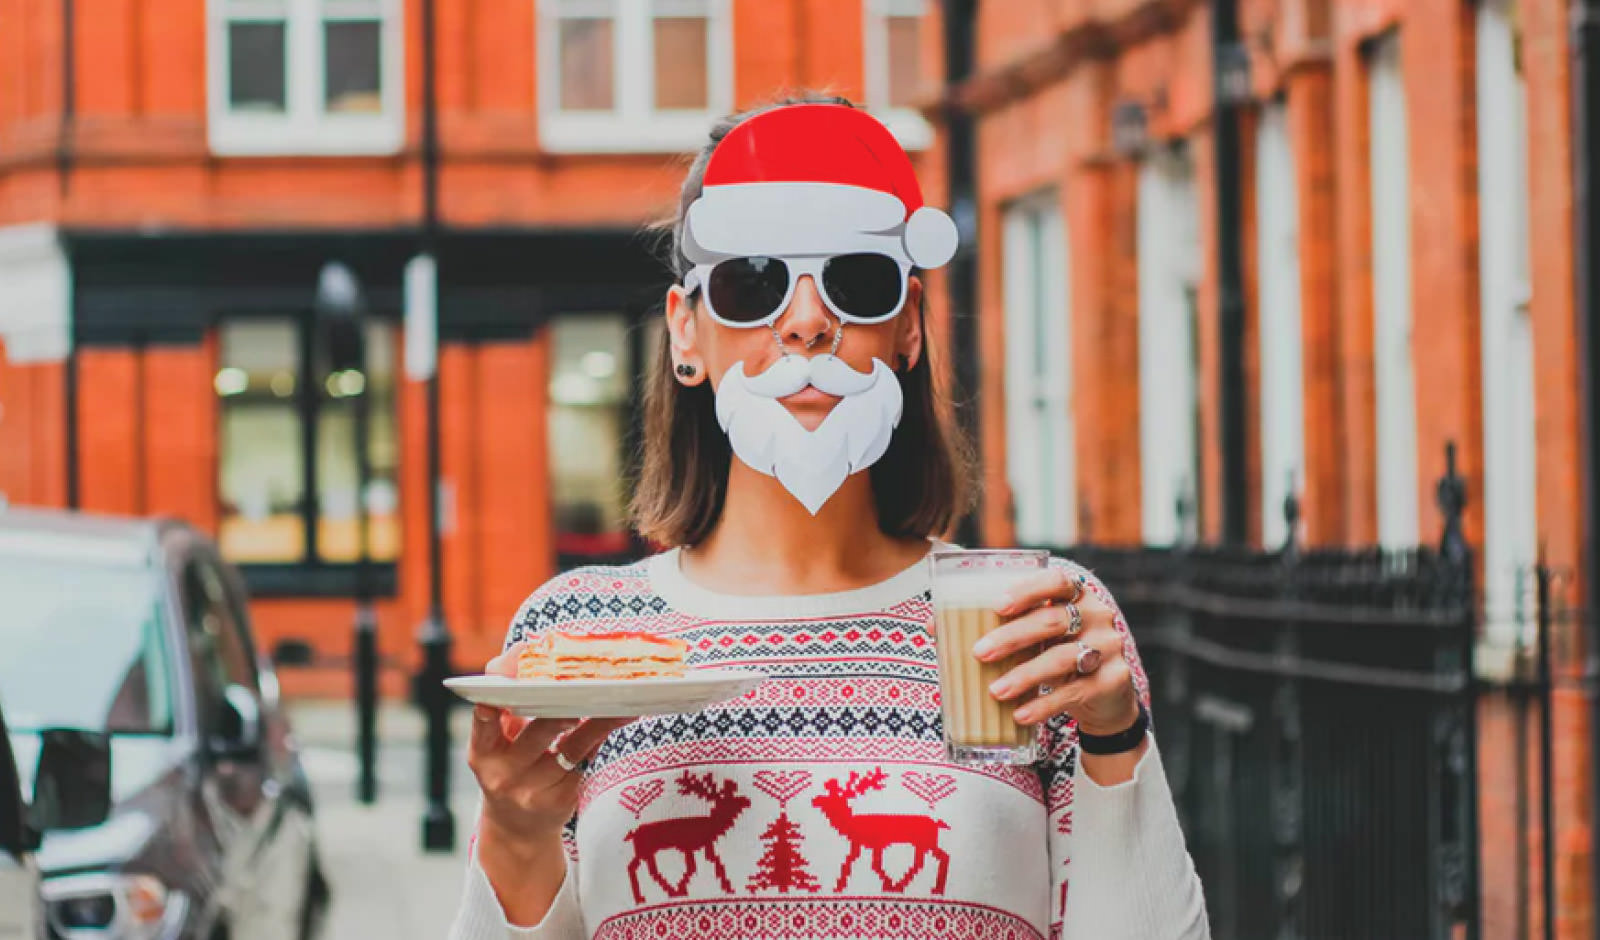 lady with a santa hat holding food and drink